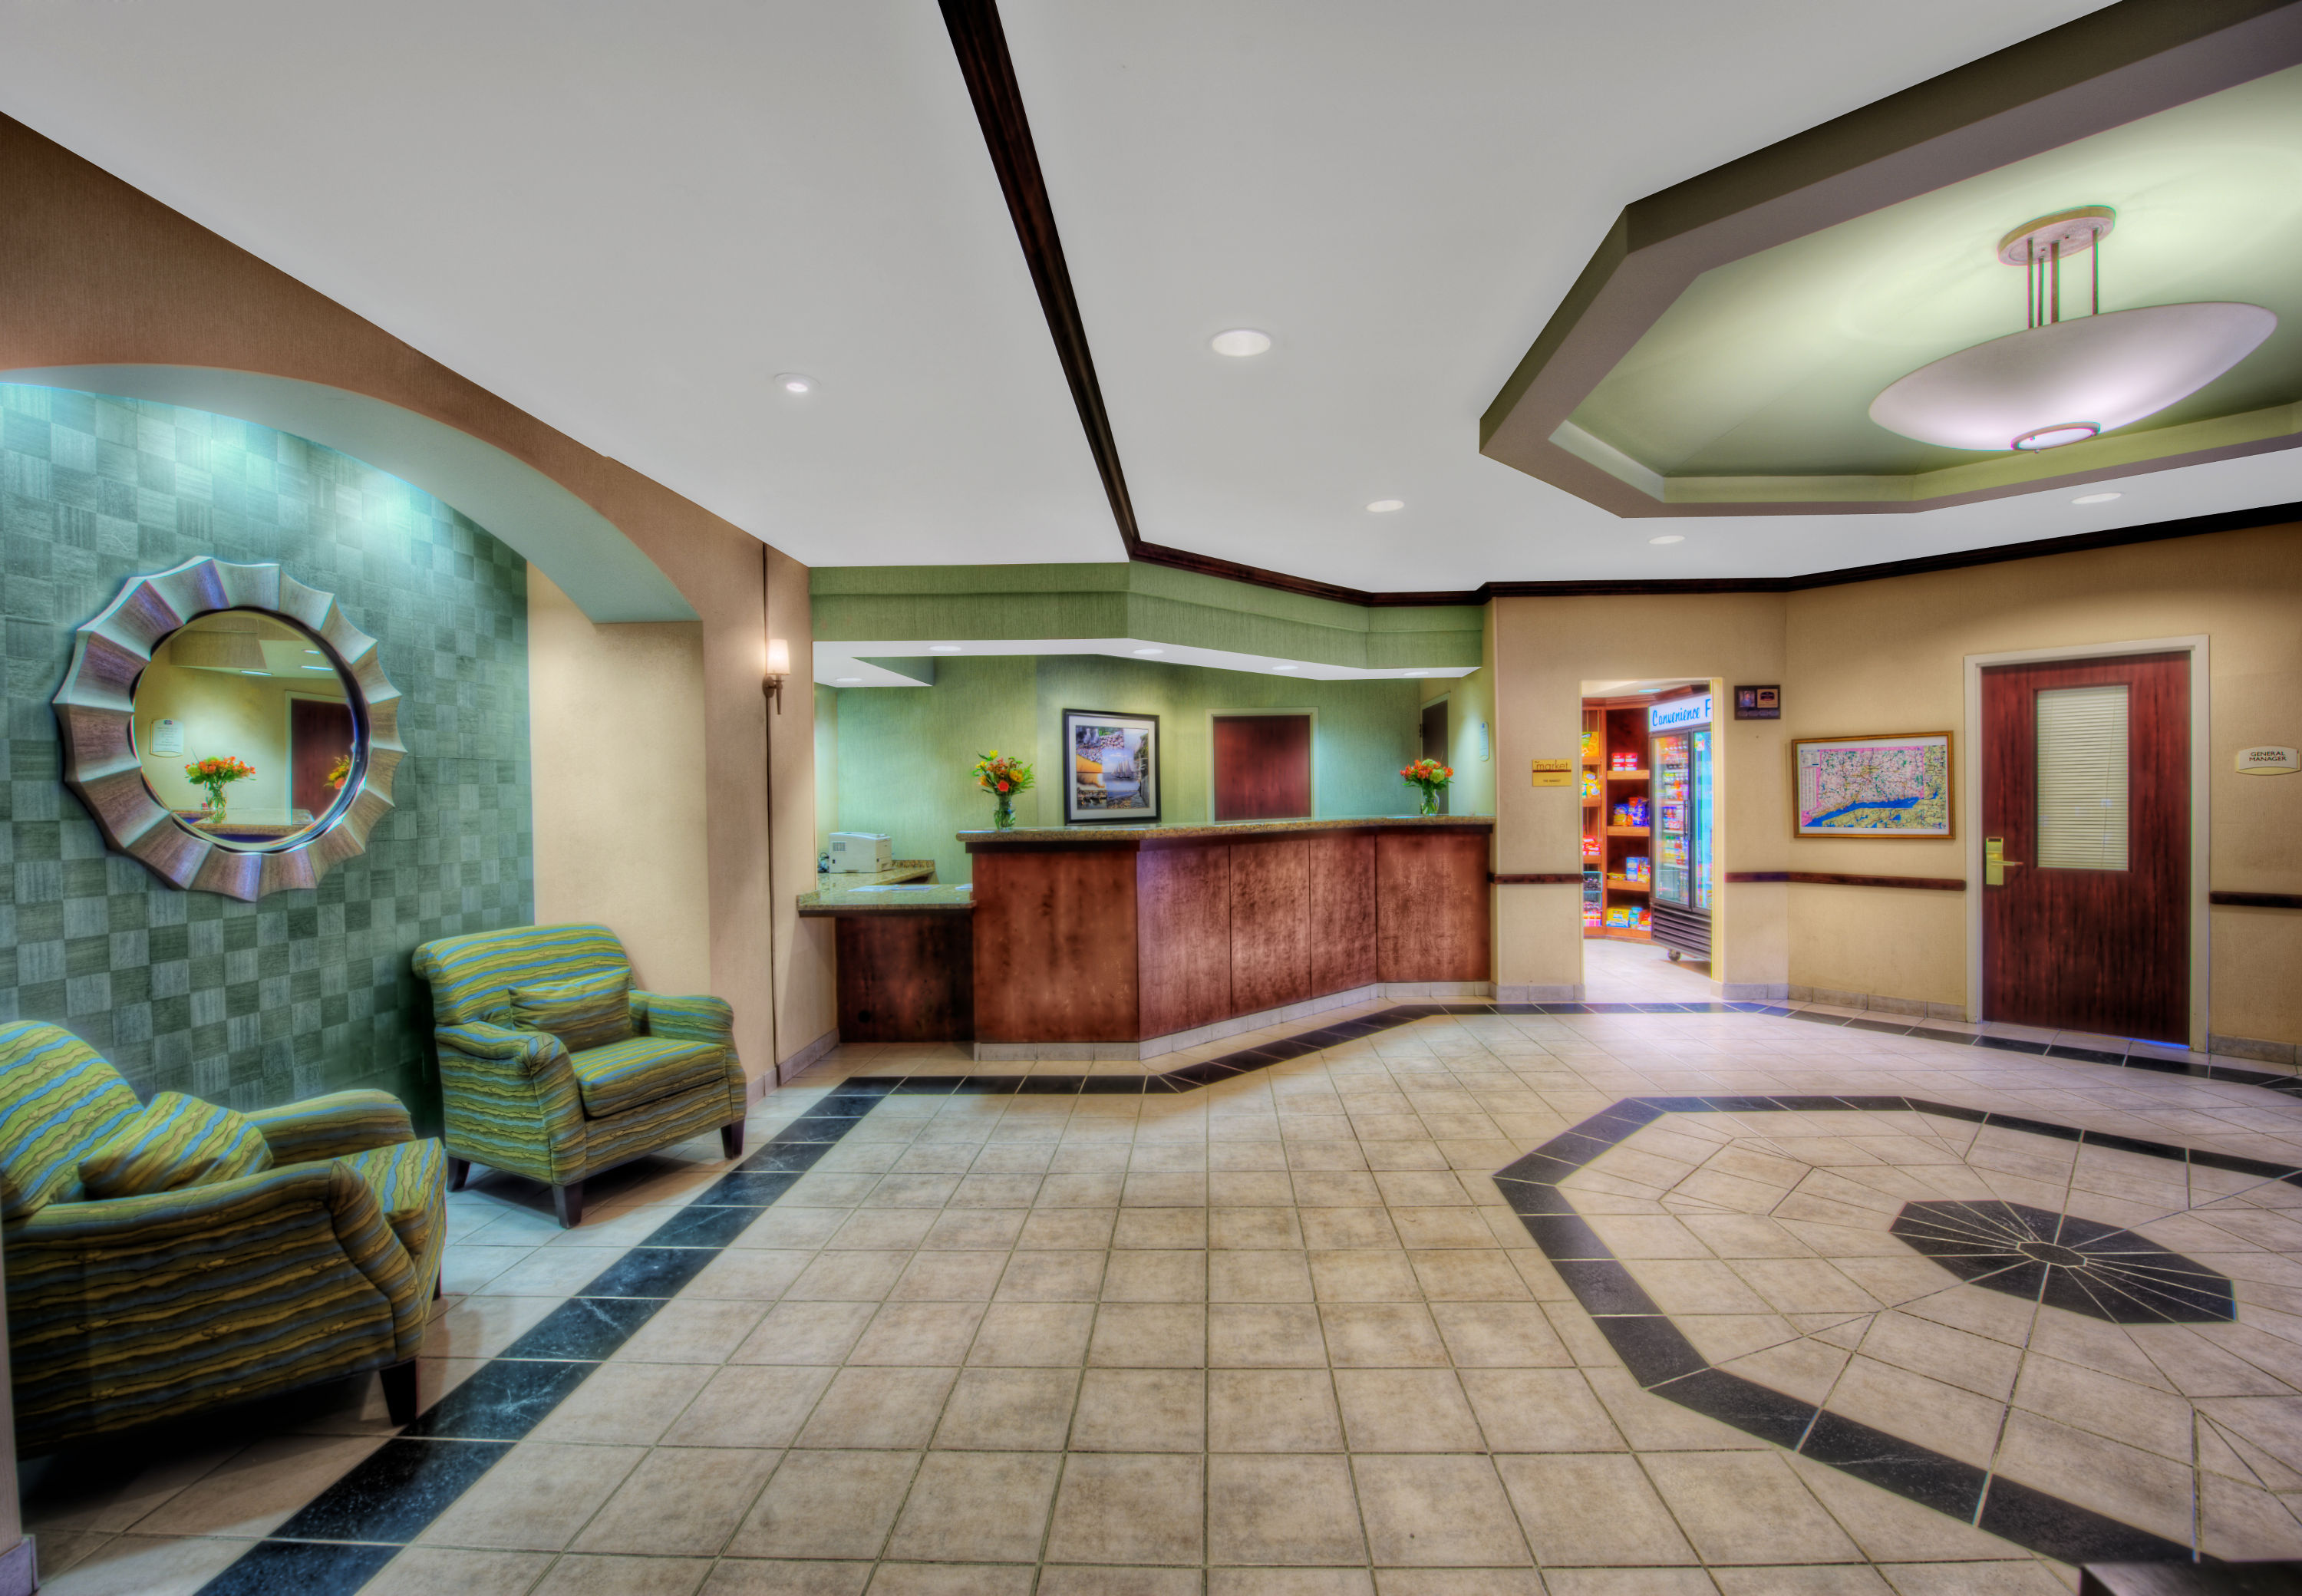 SpringHill Suites by Marriott Milford image 0